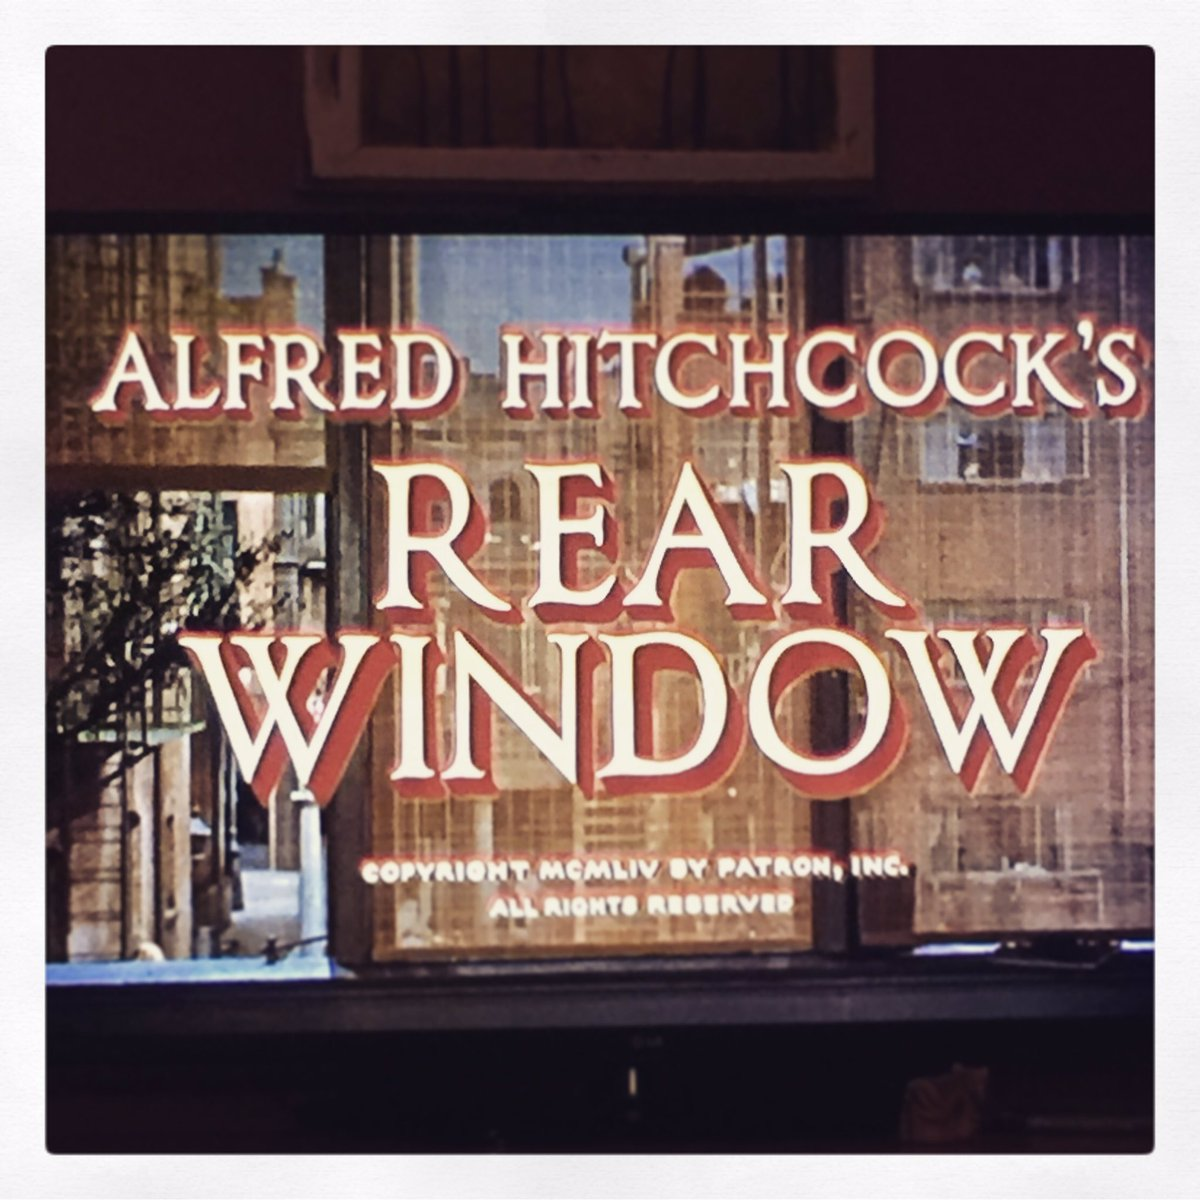 Watching one of my favorite all time films #rearwindow #respecttheclassics